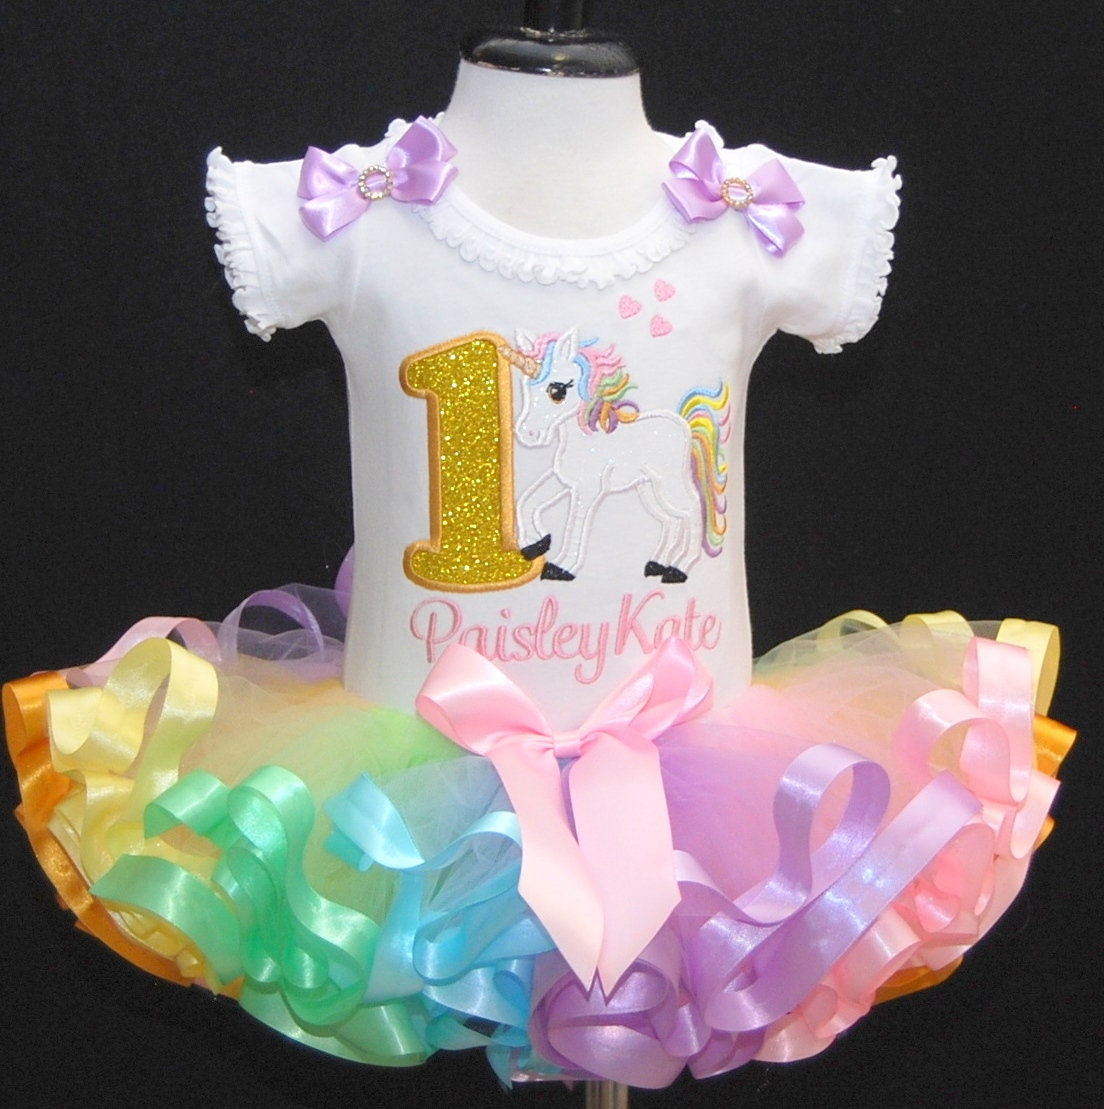 baby girl 1st birthday outfit, unicorn 1st birthday outfit, smash cake outfit girl, 1st birthday girl outfit, first birthday outfit girl